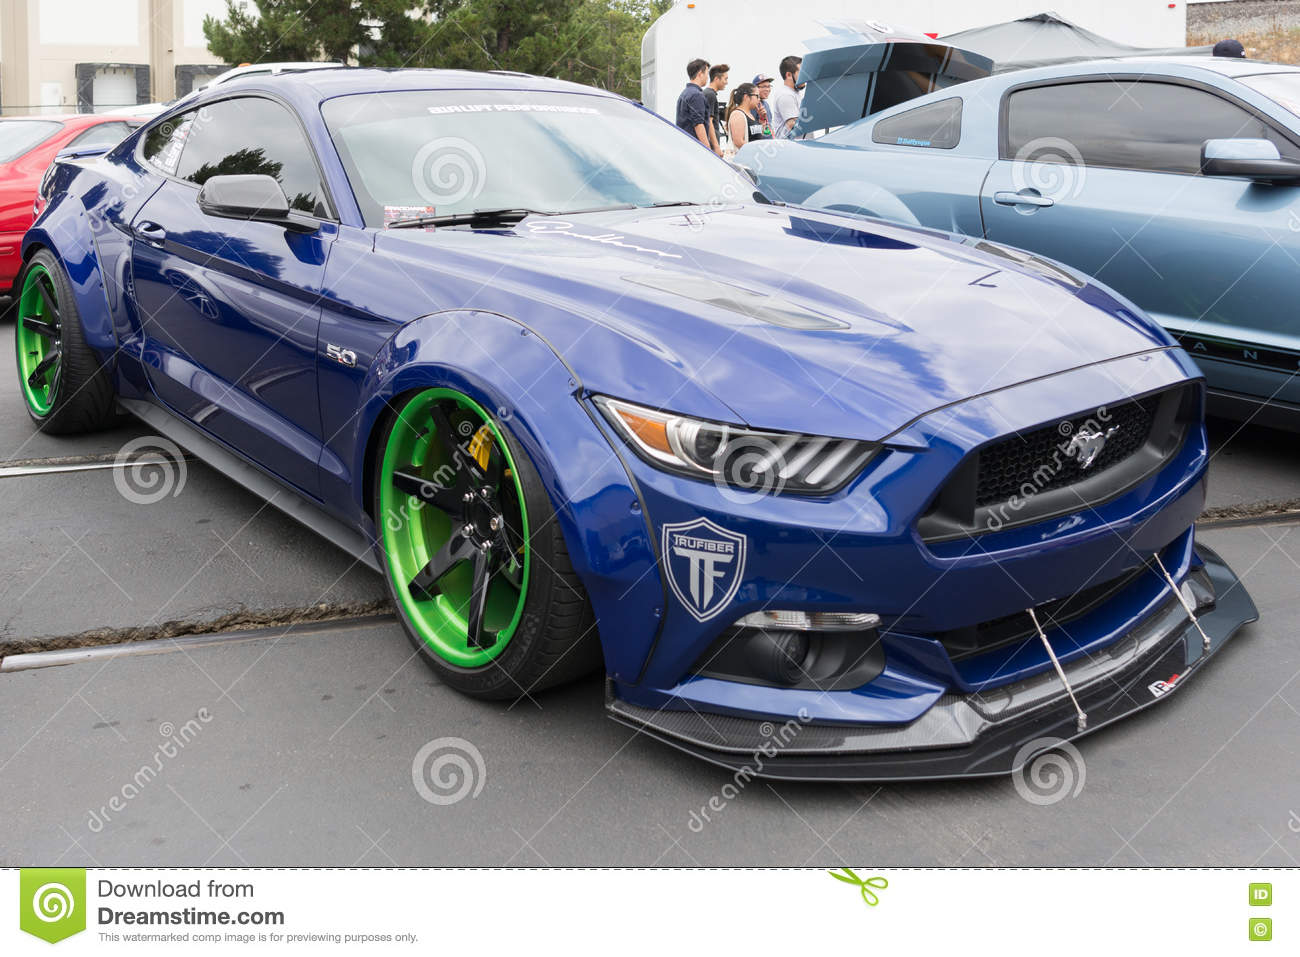 Fullerton usa may 14 2016 modified ford mustang during extreme dimensions car show